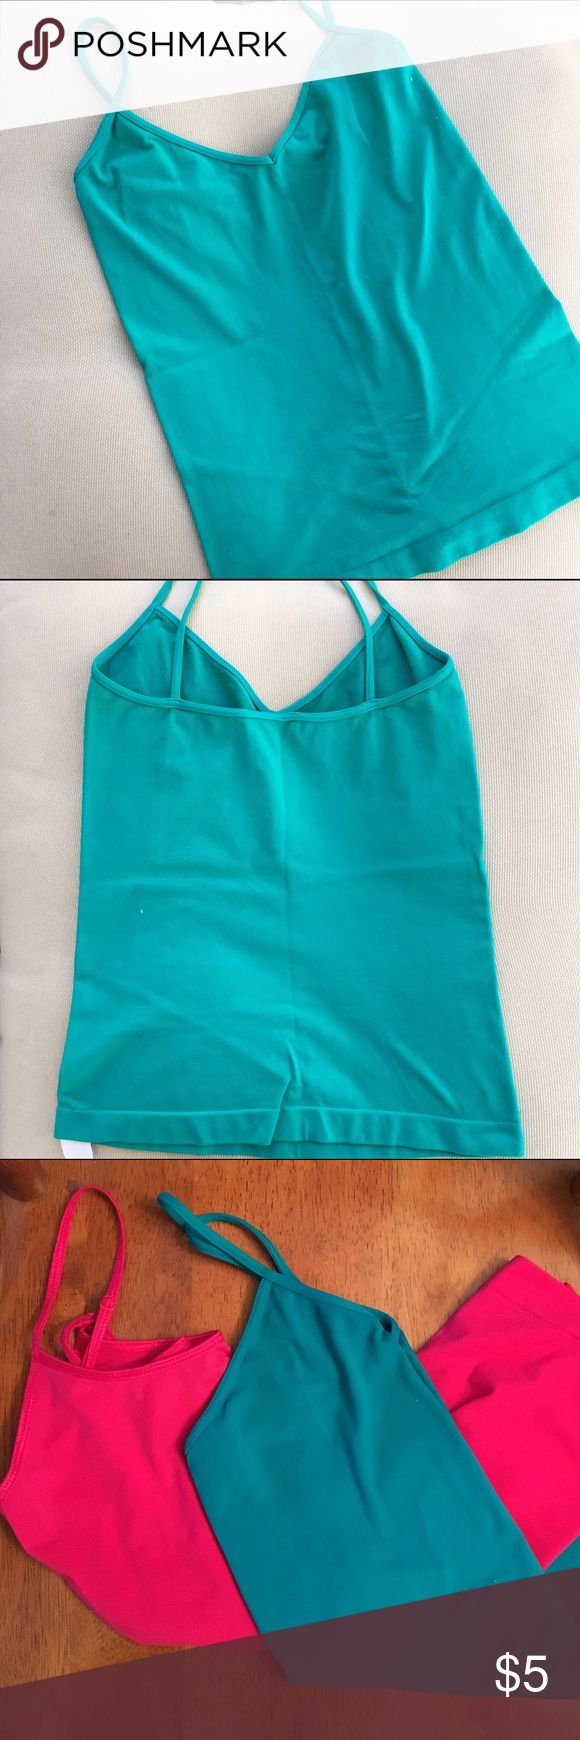 Women's camisole Green cami, nylon and spandex so it is very stretchy. Will sell pink and green cami together for $10 Tops Camisoles